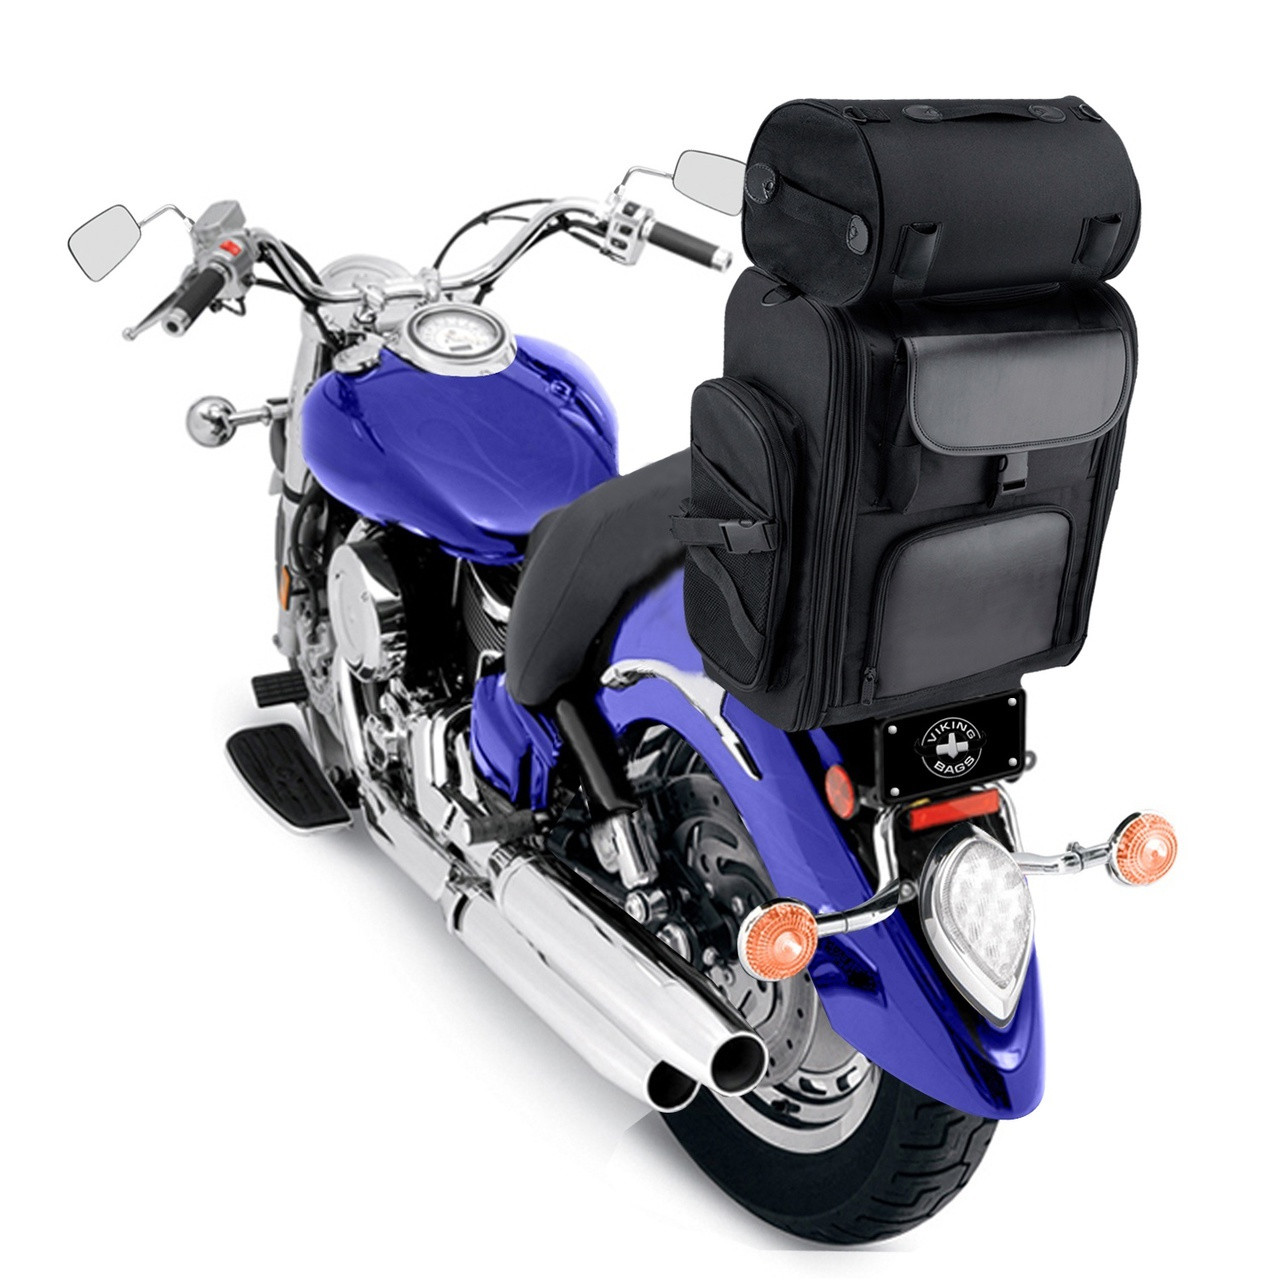 Viking Large 3305.25 Cubic Inches Motorcycle Tail Bag